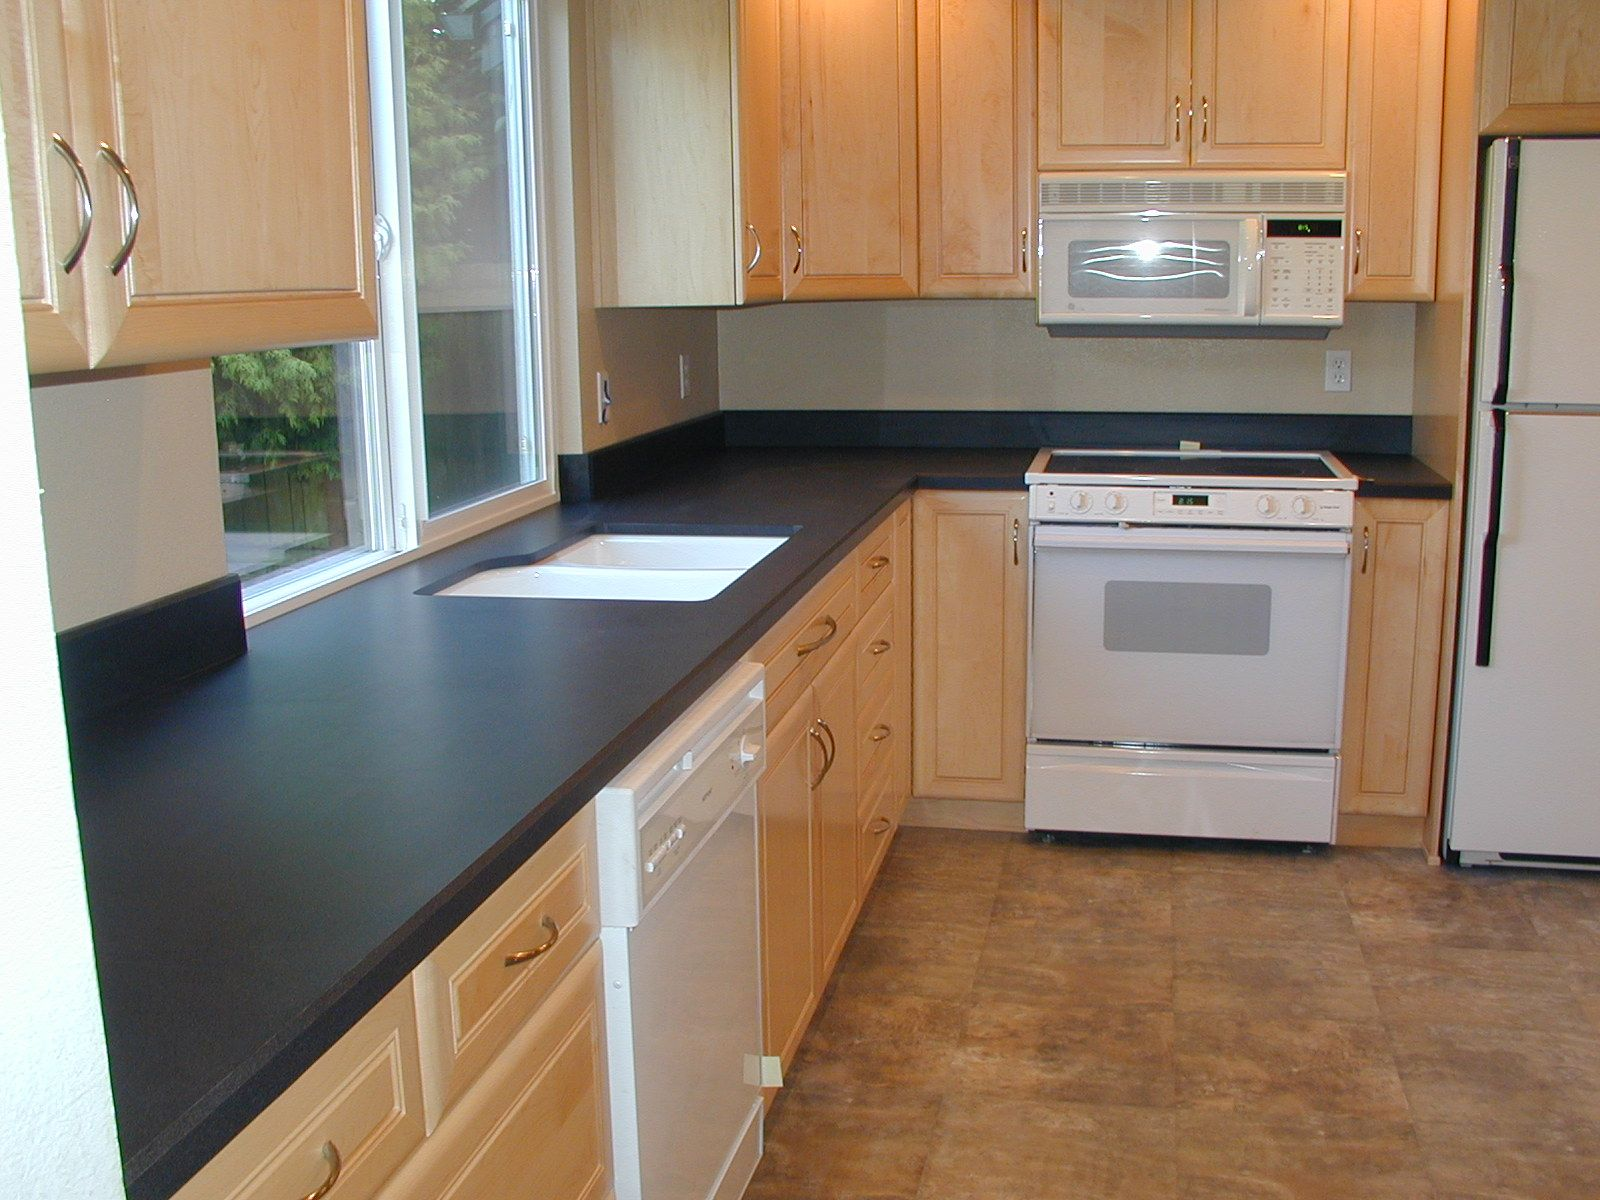 Kitchen Ideas With Dark Countertops Countertop Design And Installation Laminate Kitchen